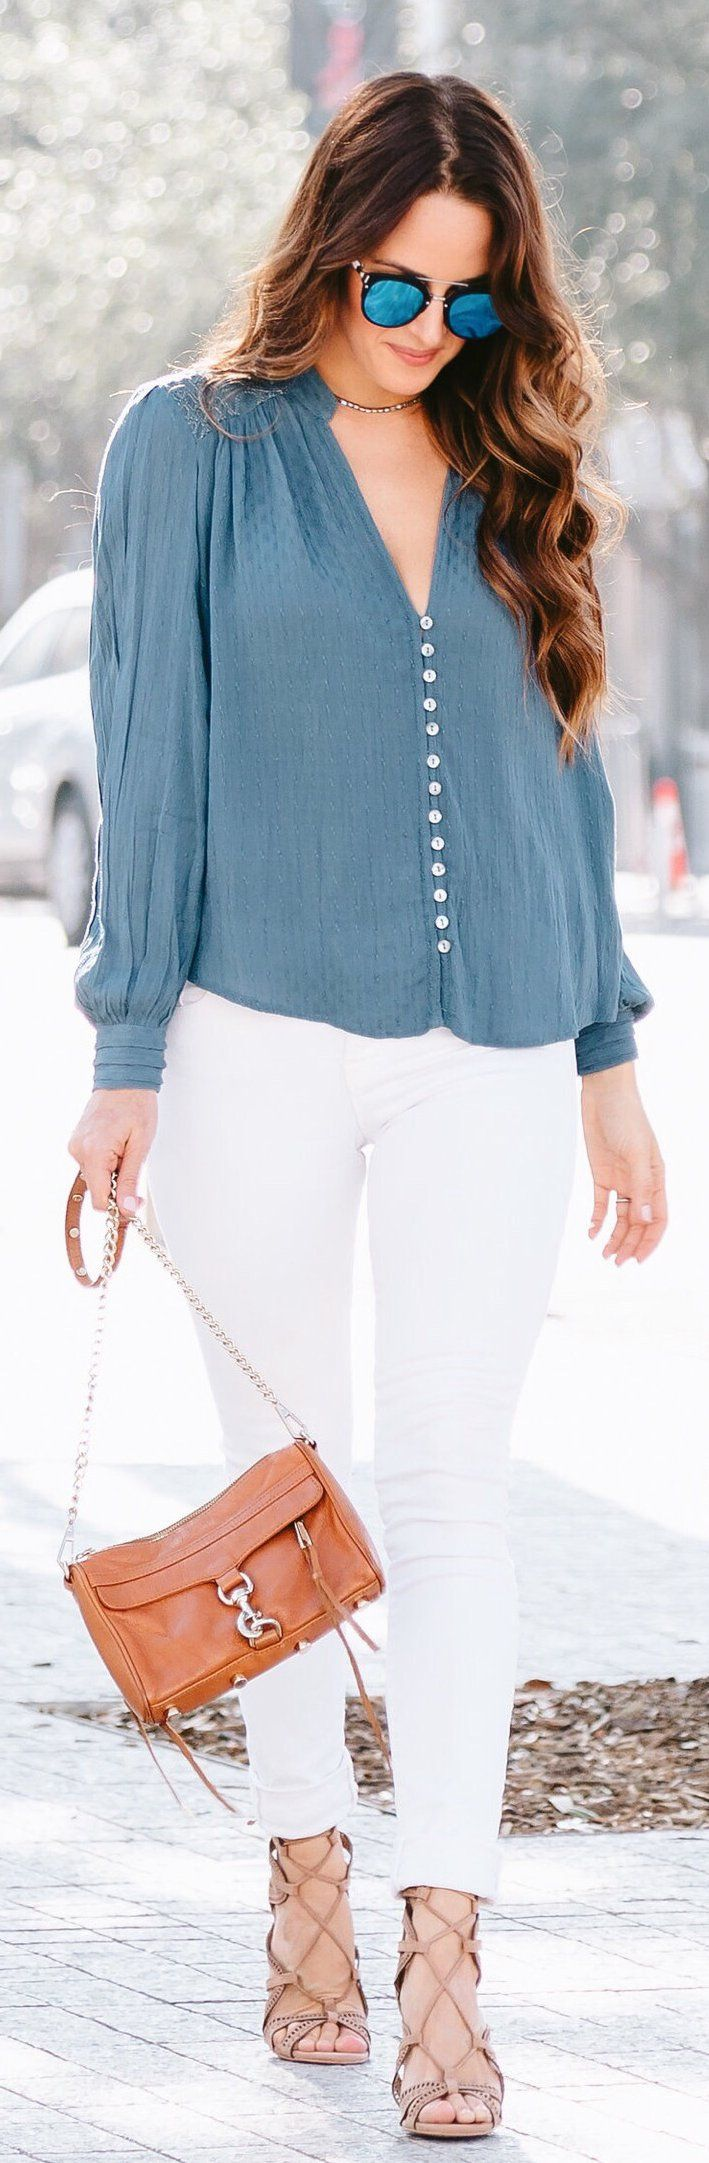 stylish spring outfits /  Blue Blouse / White Denim / Beige Laced Up Pumps / Camel Shoulder Bag